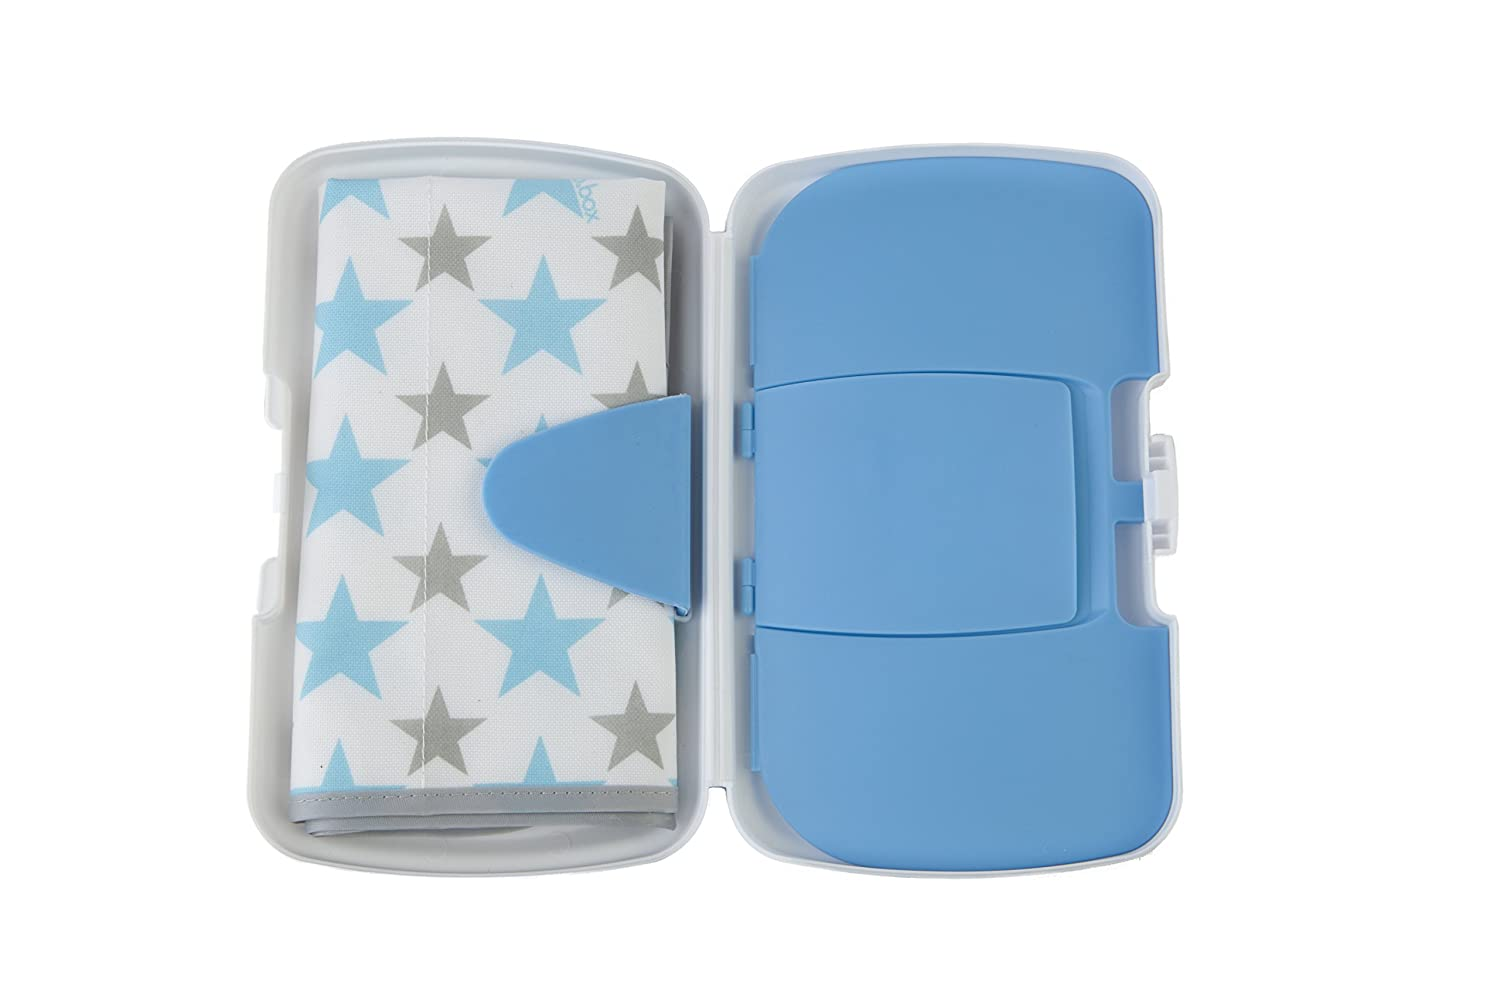 Amazon.com : b.box Diaper Wallet | Shining Star Pattern Easy-to-Clean Changing Mat | Holds 2 Disposable Diapers Or a Change of Clothes | BPA-Free ...